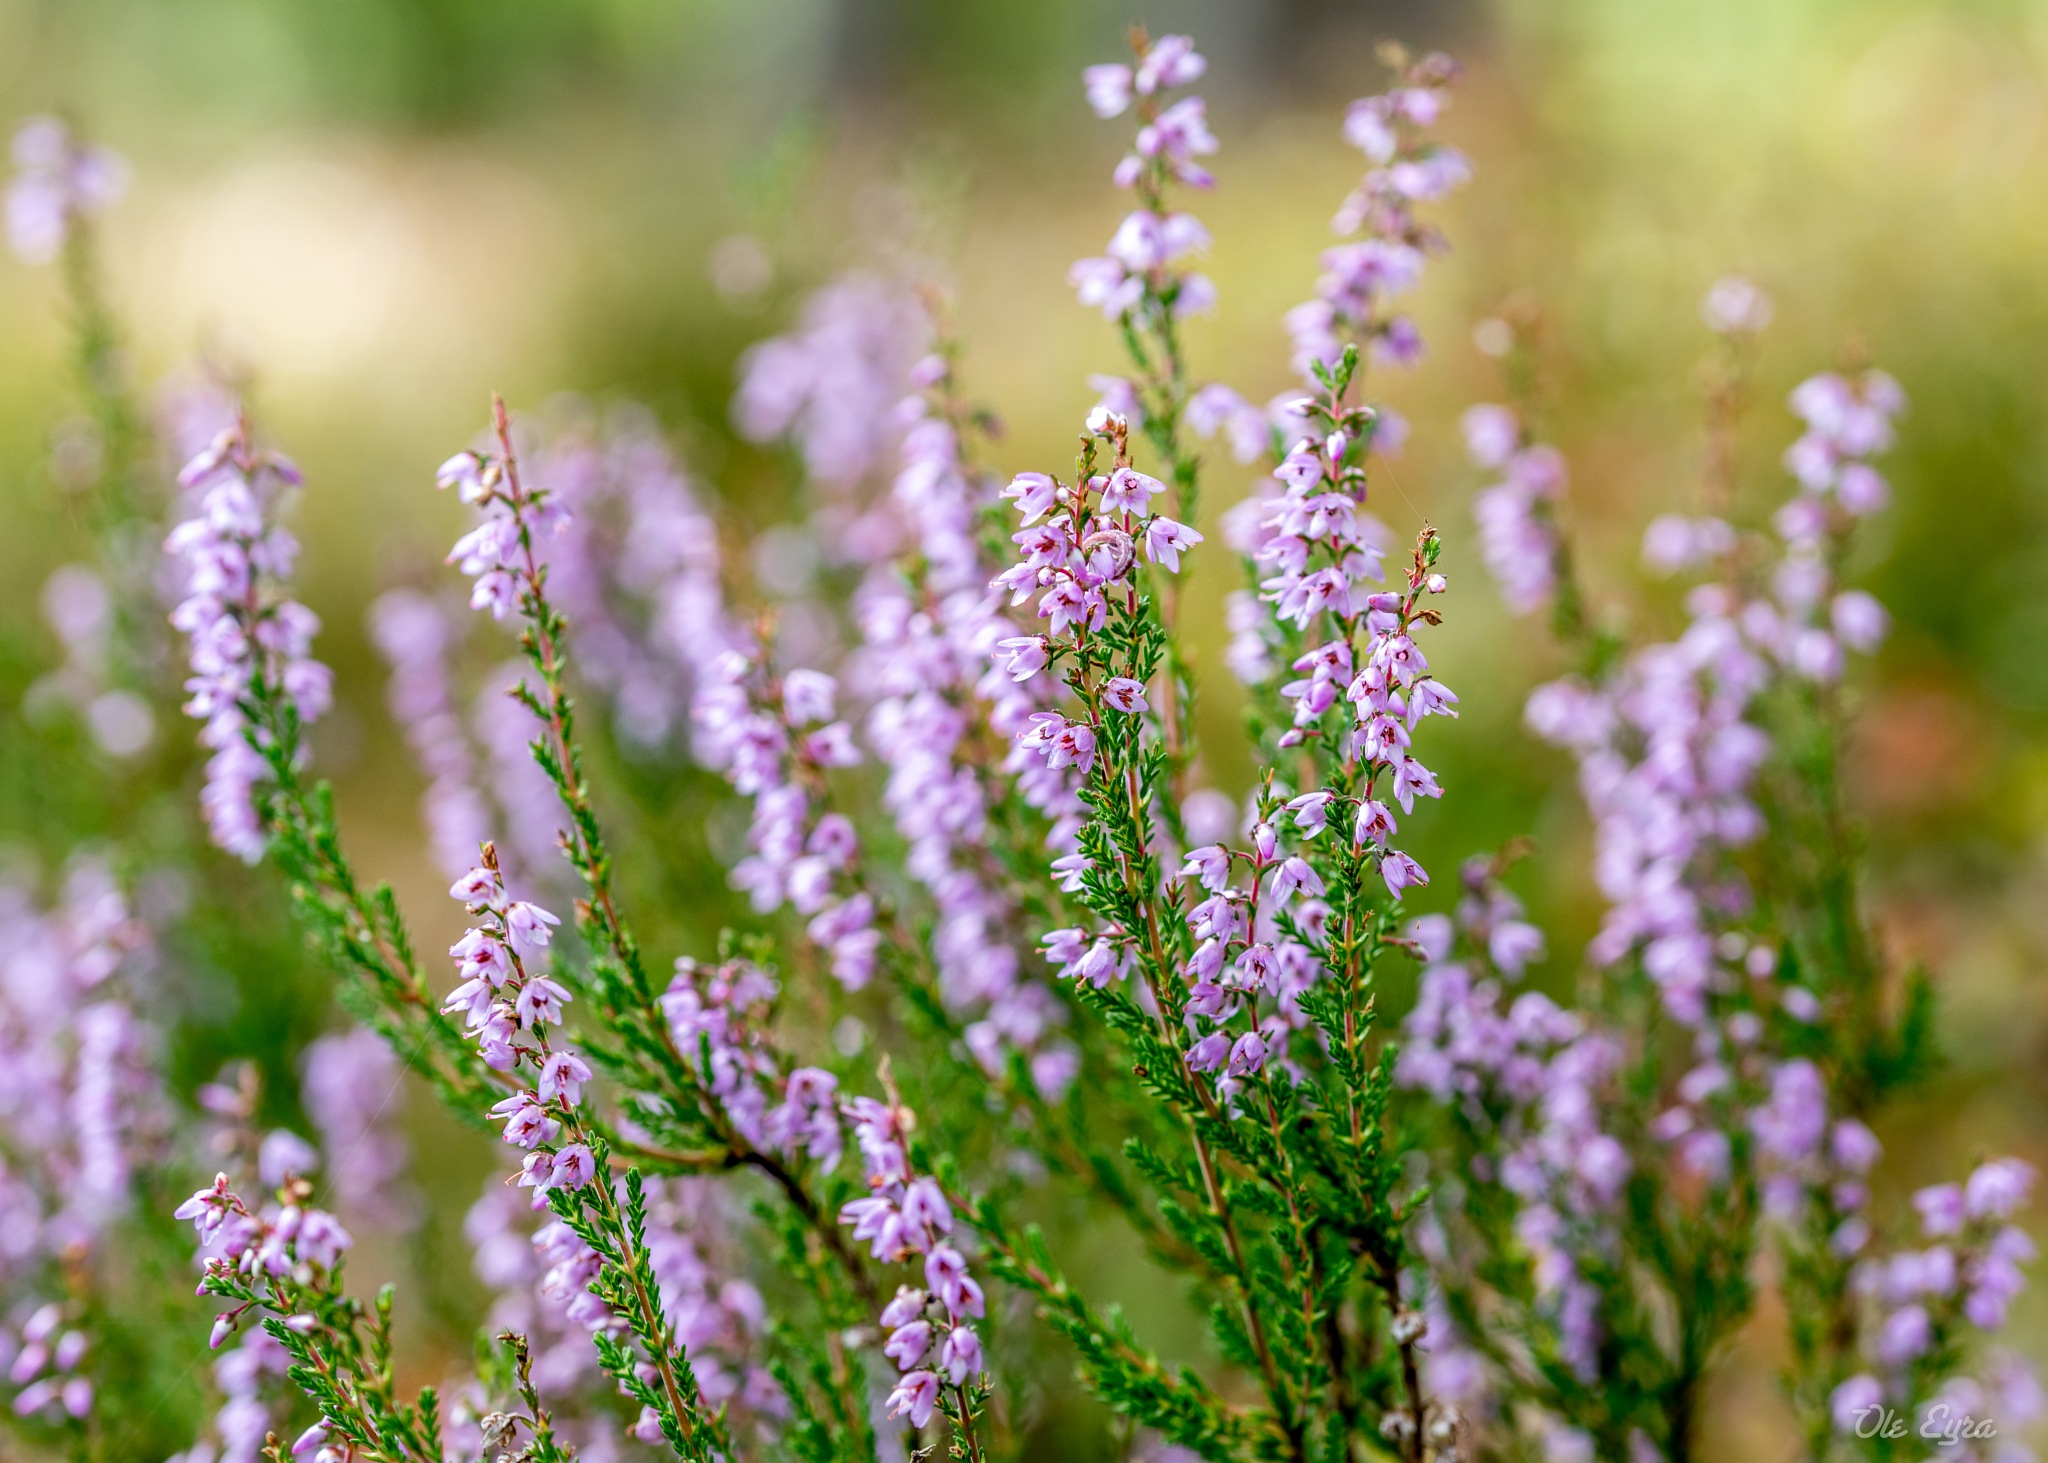 More Heather by Ole Morten Eyra